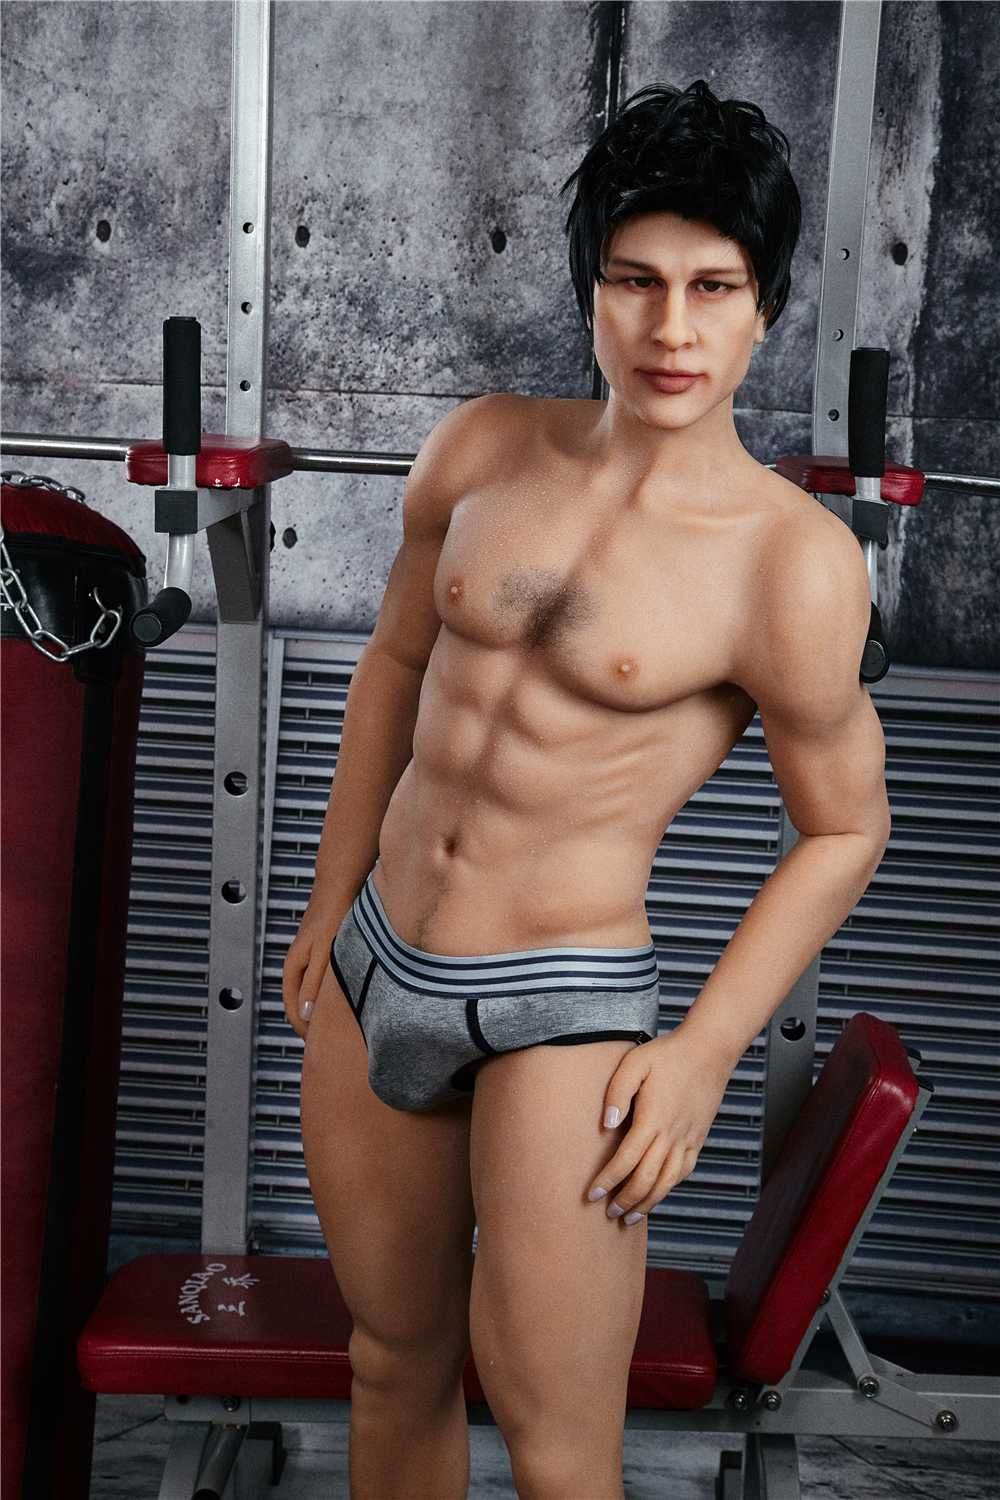 sex doll irontech homme 1 - Accueil